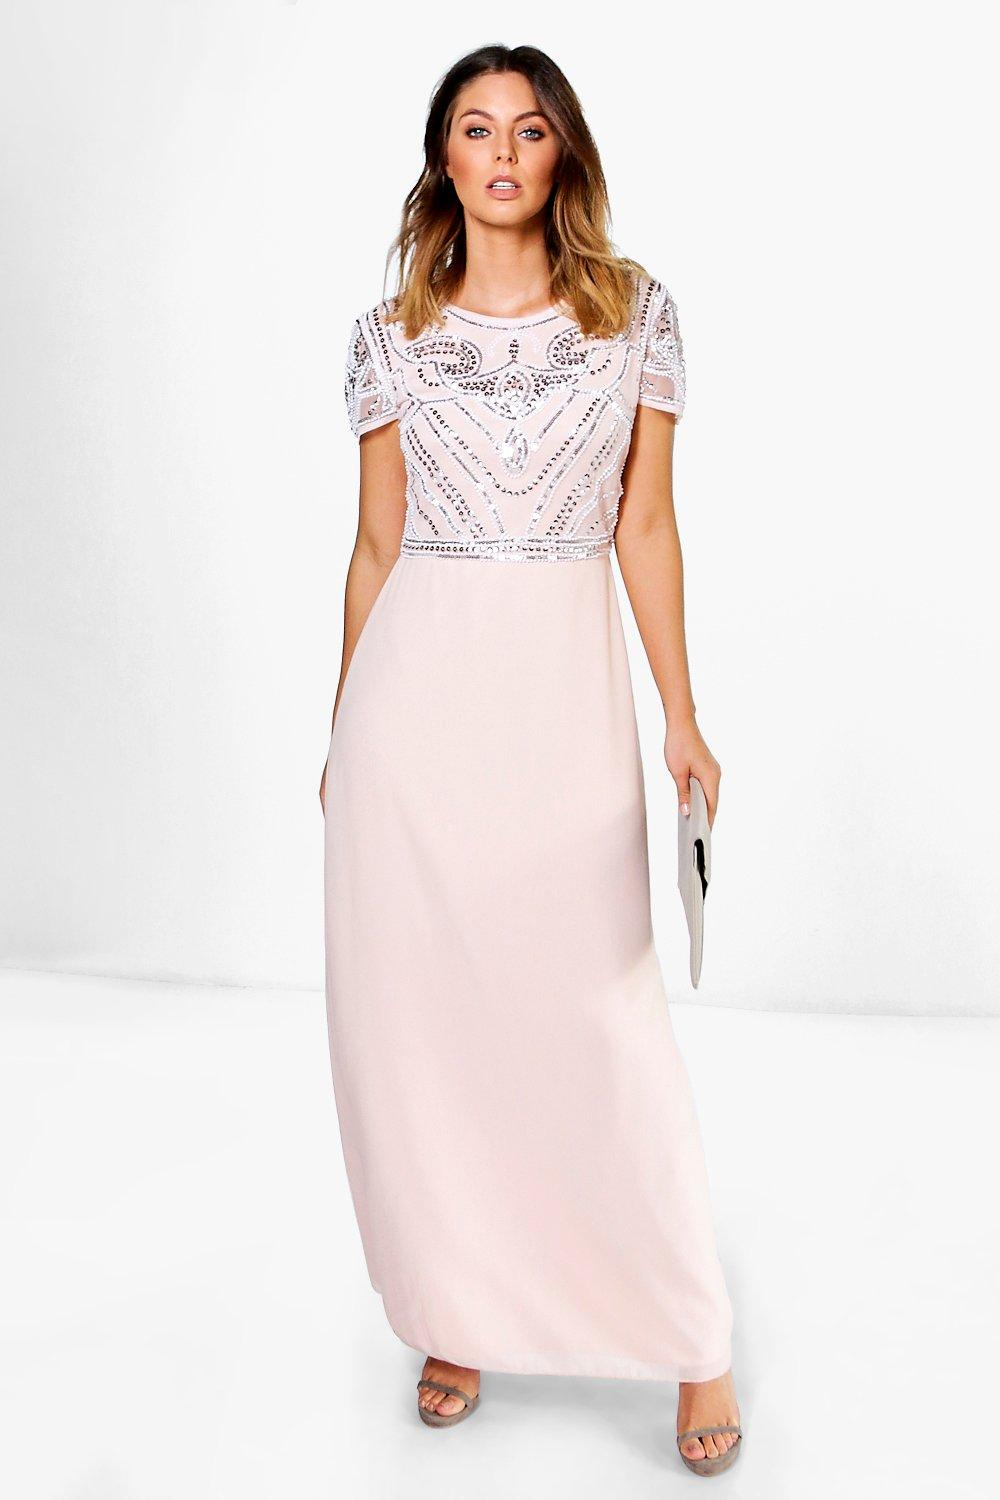 Best 1920s Prom Dresses – Great Gatsby Style Gowns Womens Boutique Embellished Top Maxi Dress - pink - 14 $84.00 AT vintagedancer.com